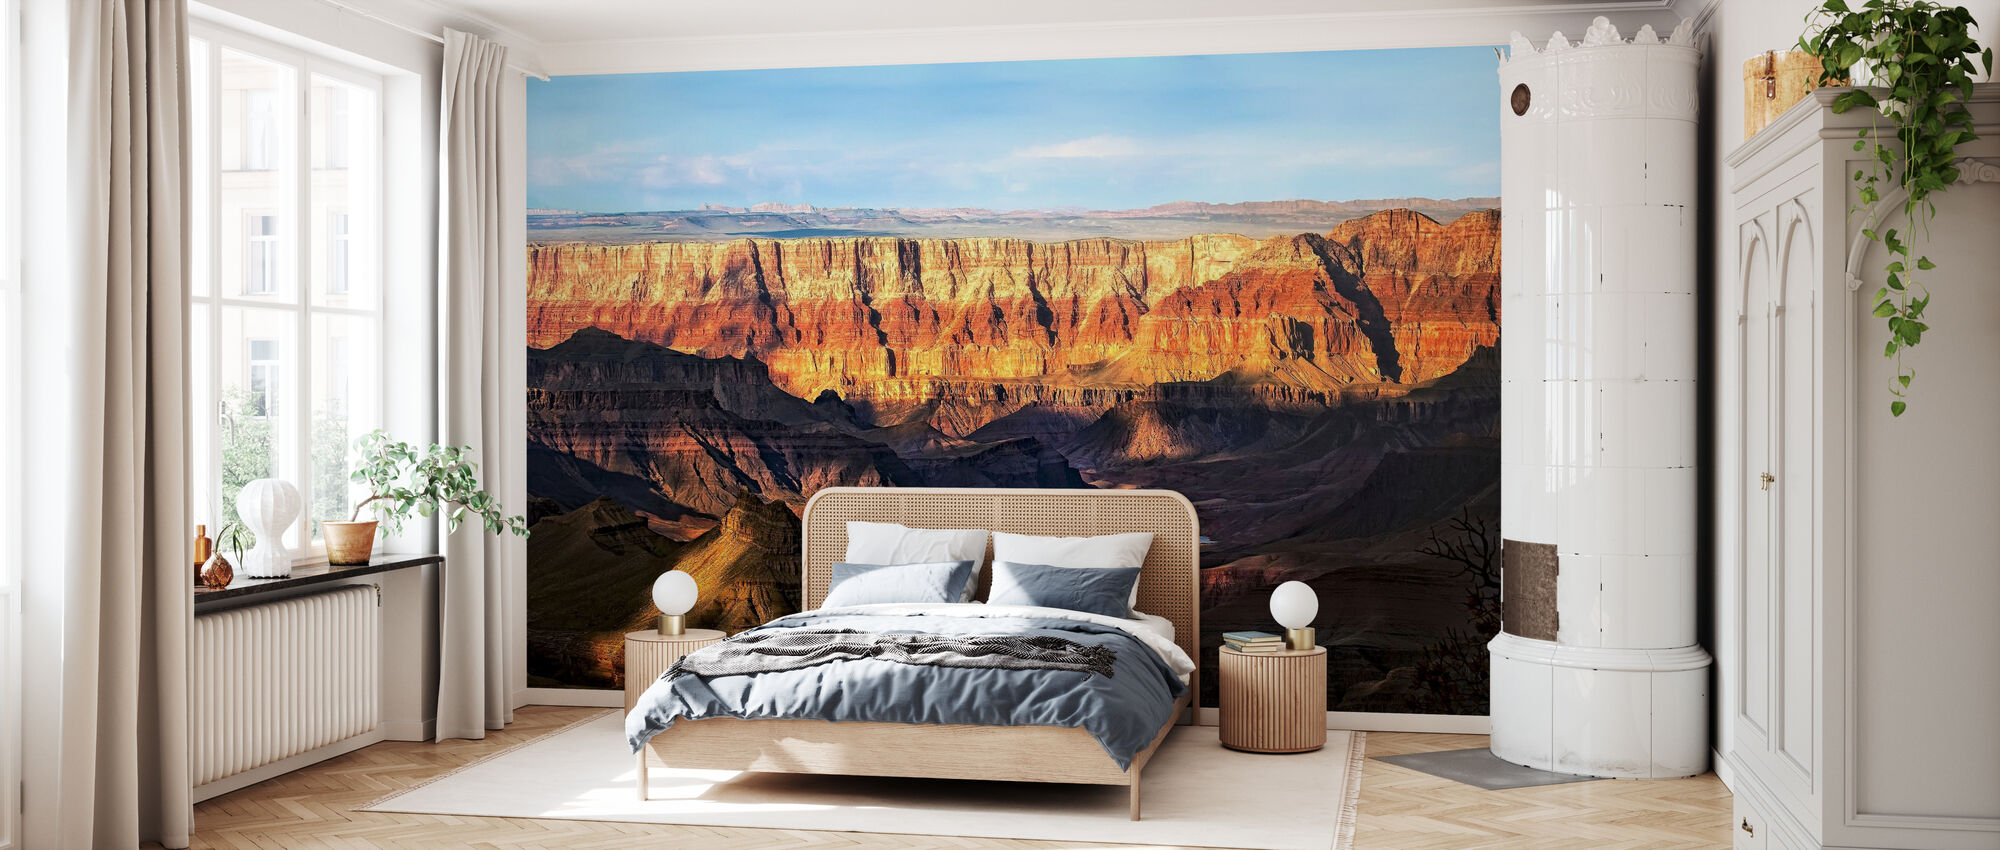 Canyon View - Wallpaper - Bedroom